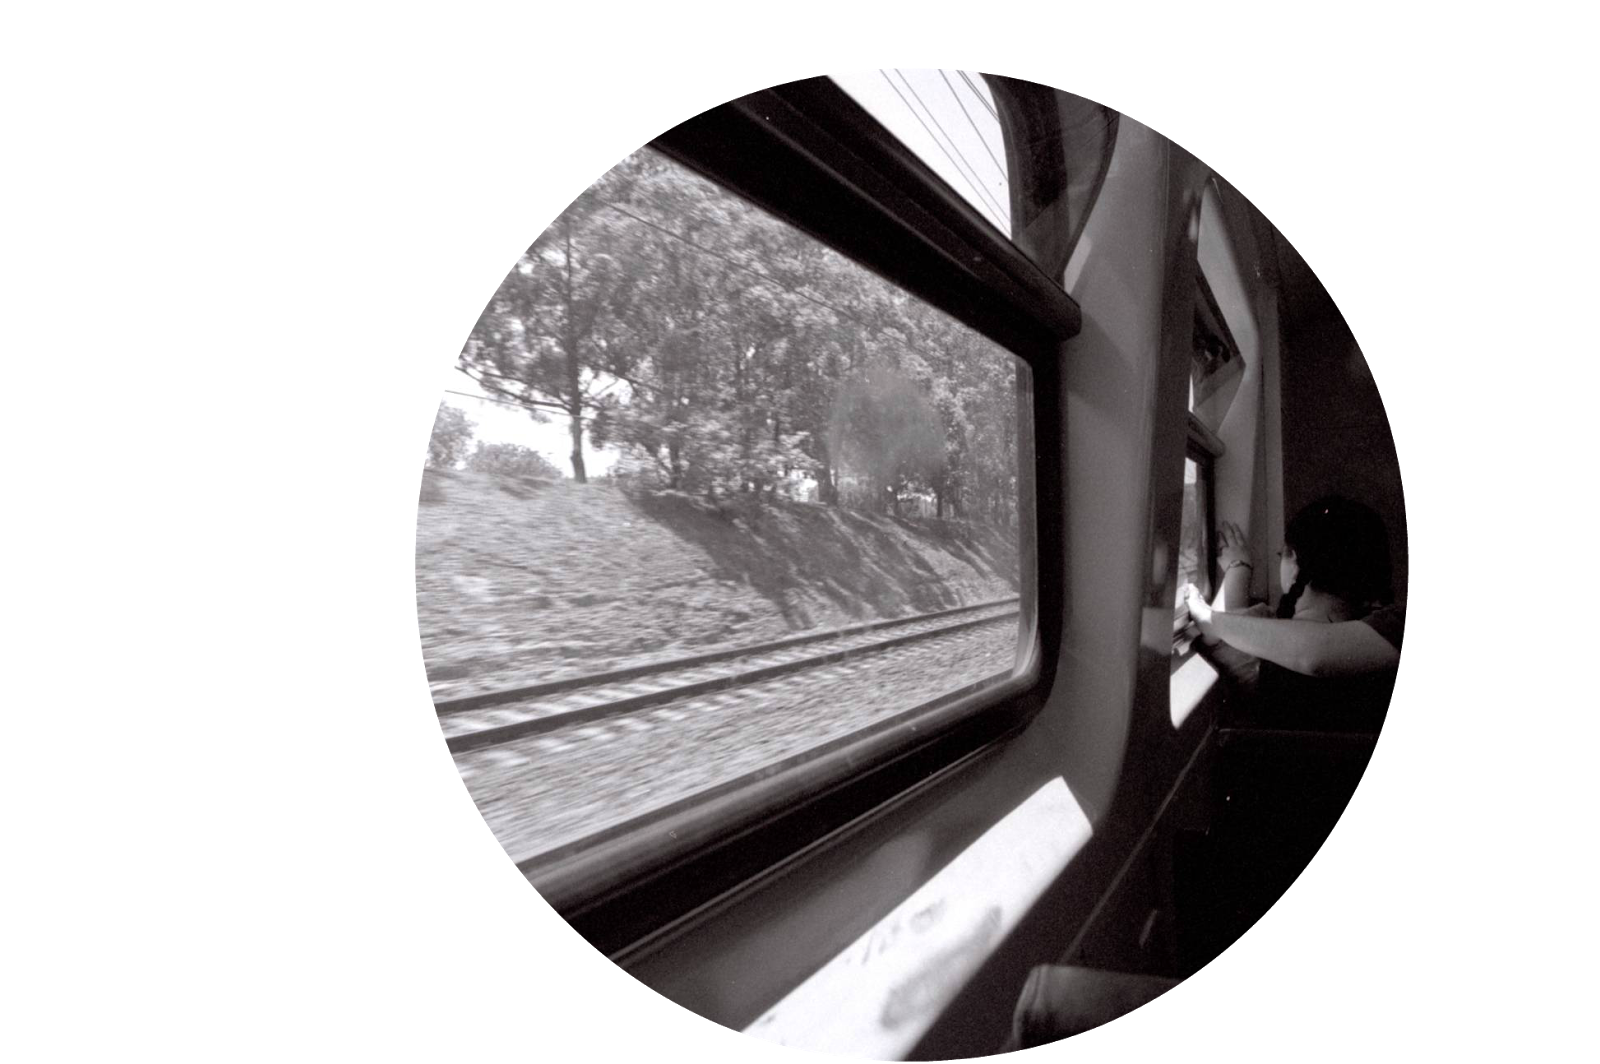 http://yceran.org/gallery/full-image.qf?image=inside%20a%20train%20window%202